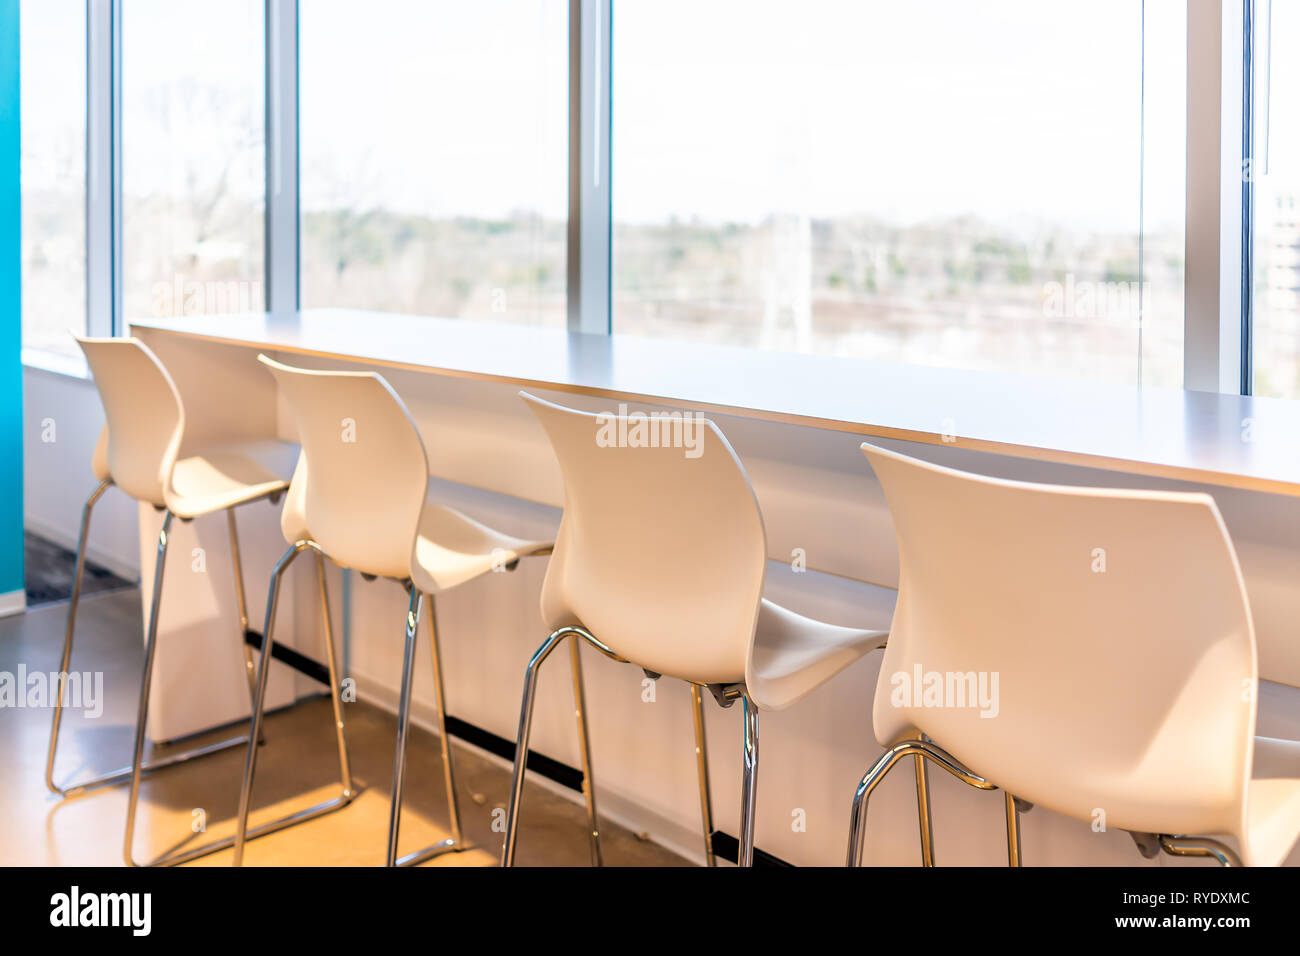 New Modern Office Room Lunch Kitchen Bar In Building With Wooden Corporate Business Table Closeup By Glass Window And Many Row Chairs Empty Nobody Stock Photo Alamy